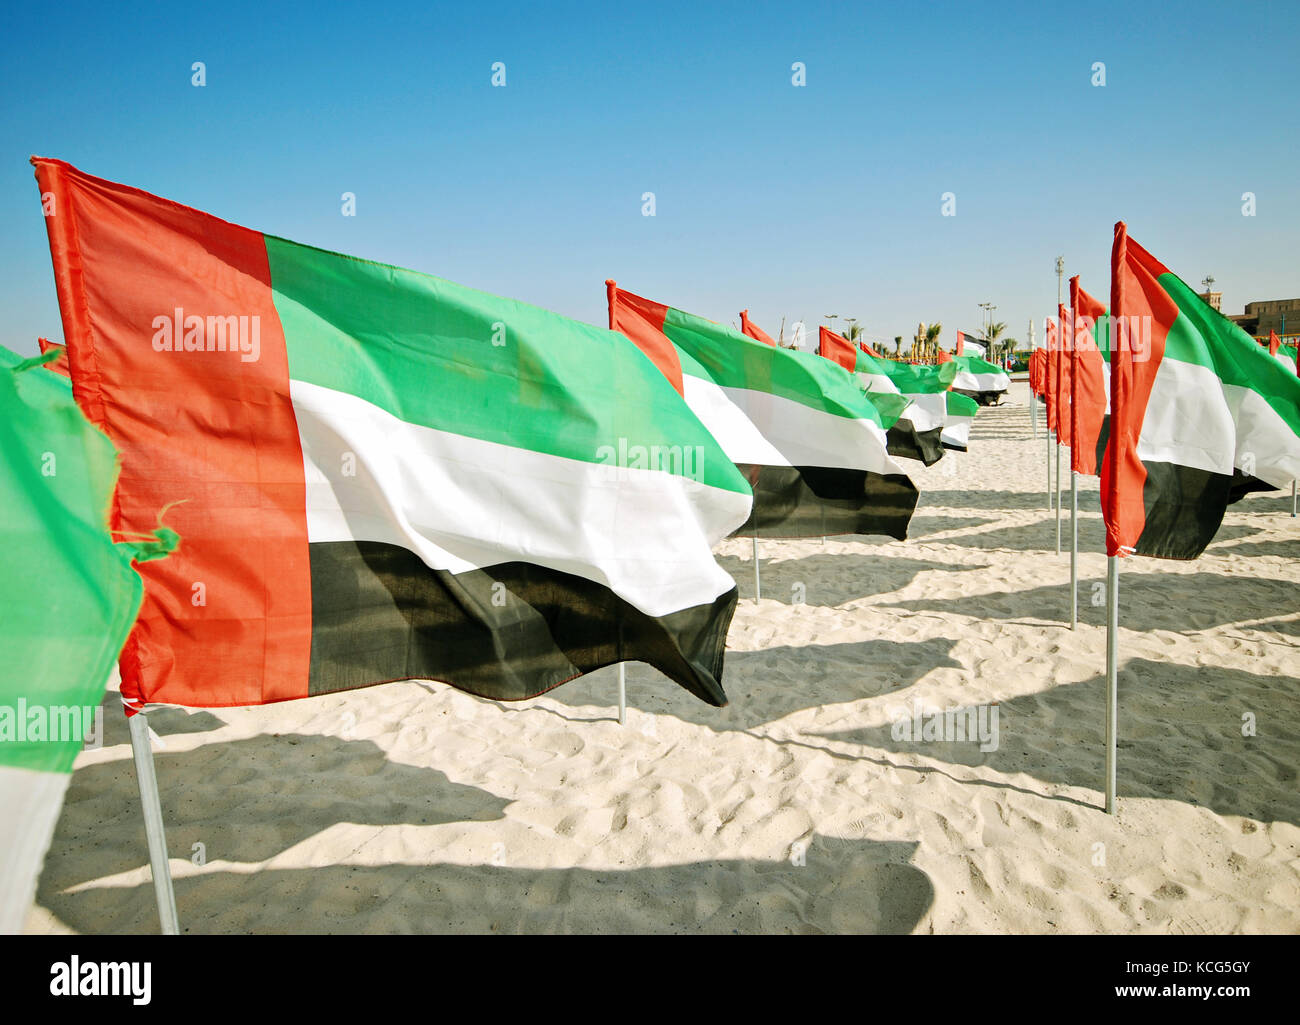 Maby flags of UAE on the beach Celebration of National Day - Day of the United Arab Emirates Stock Photo